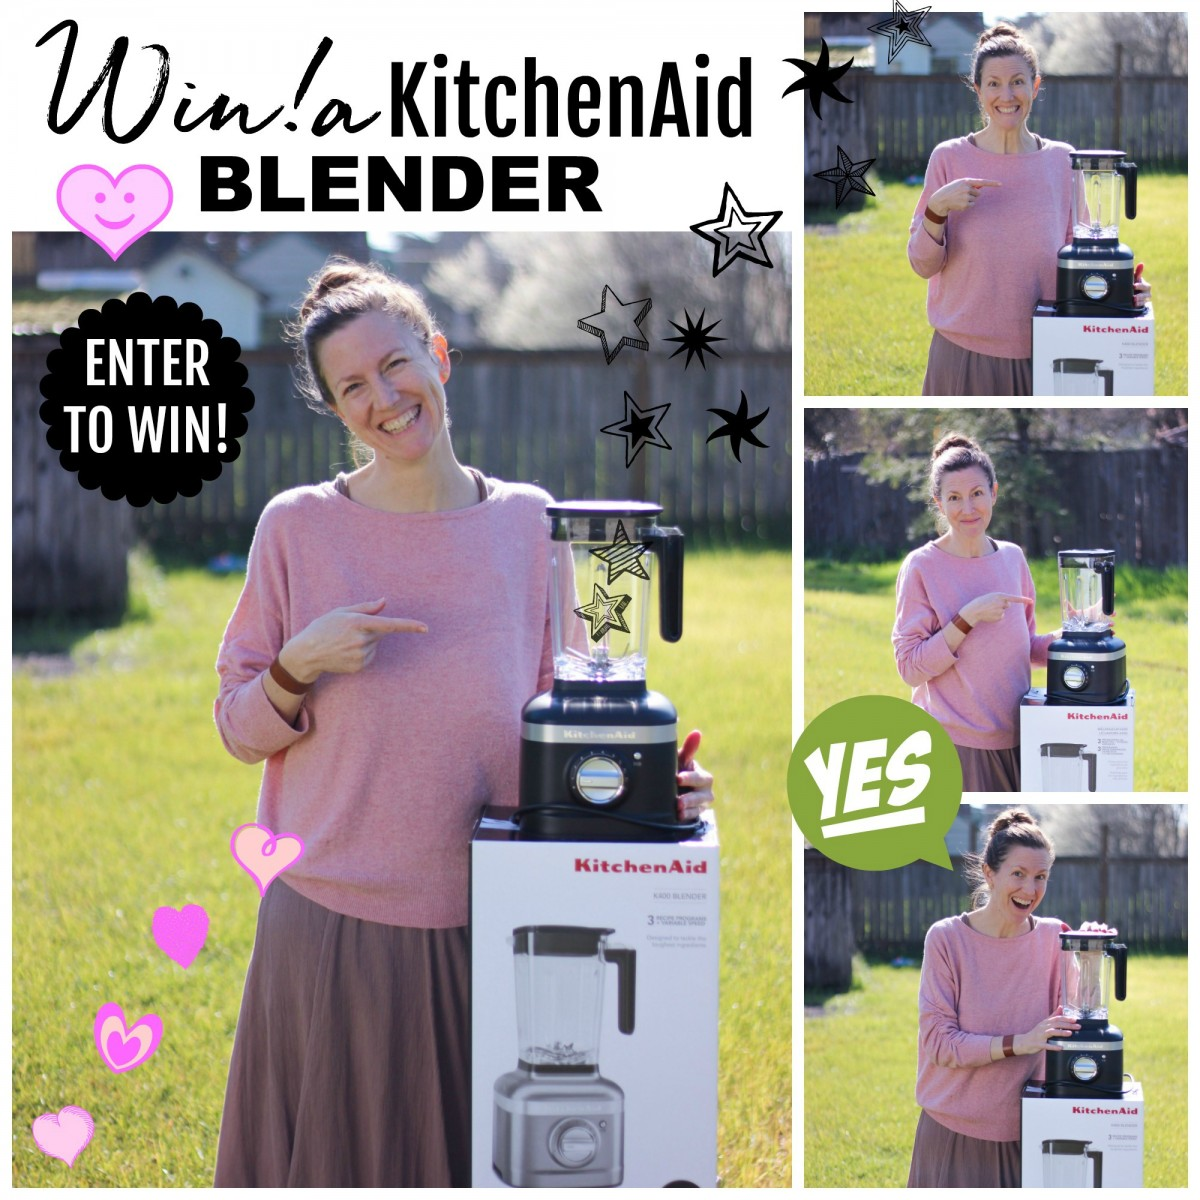 enter to win sign with me and free kitchen aid blender giveaway